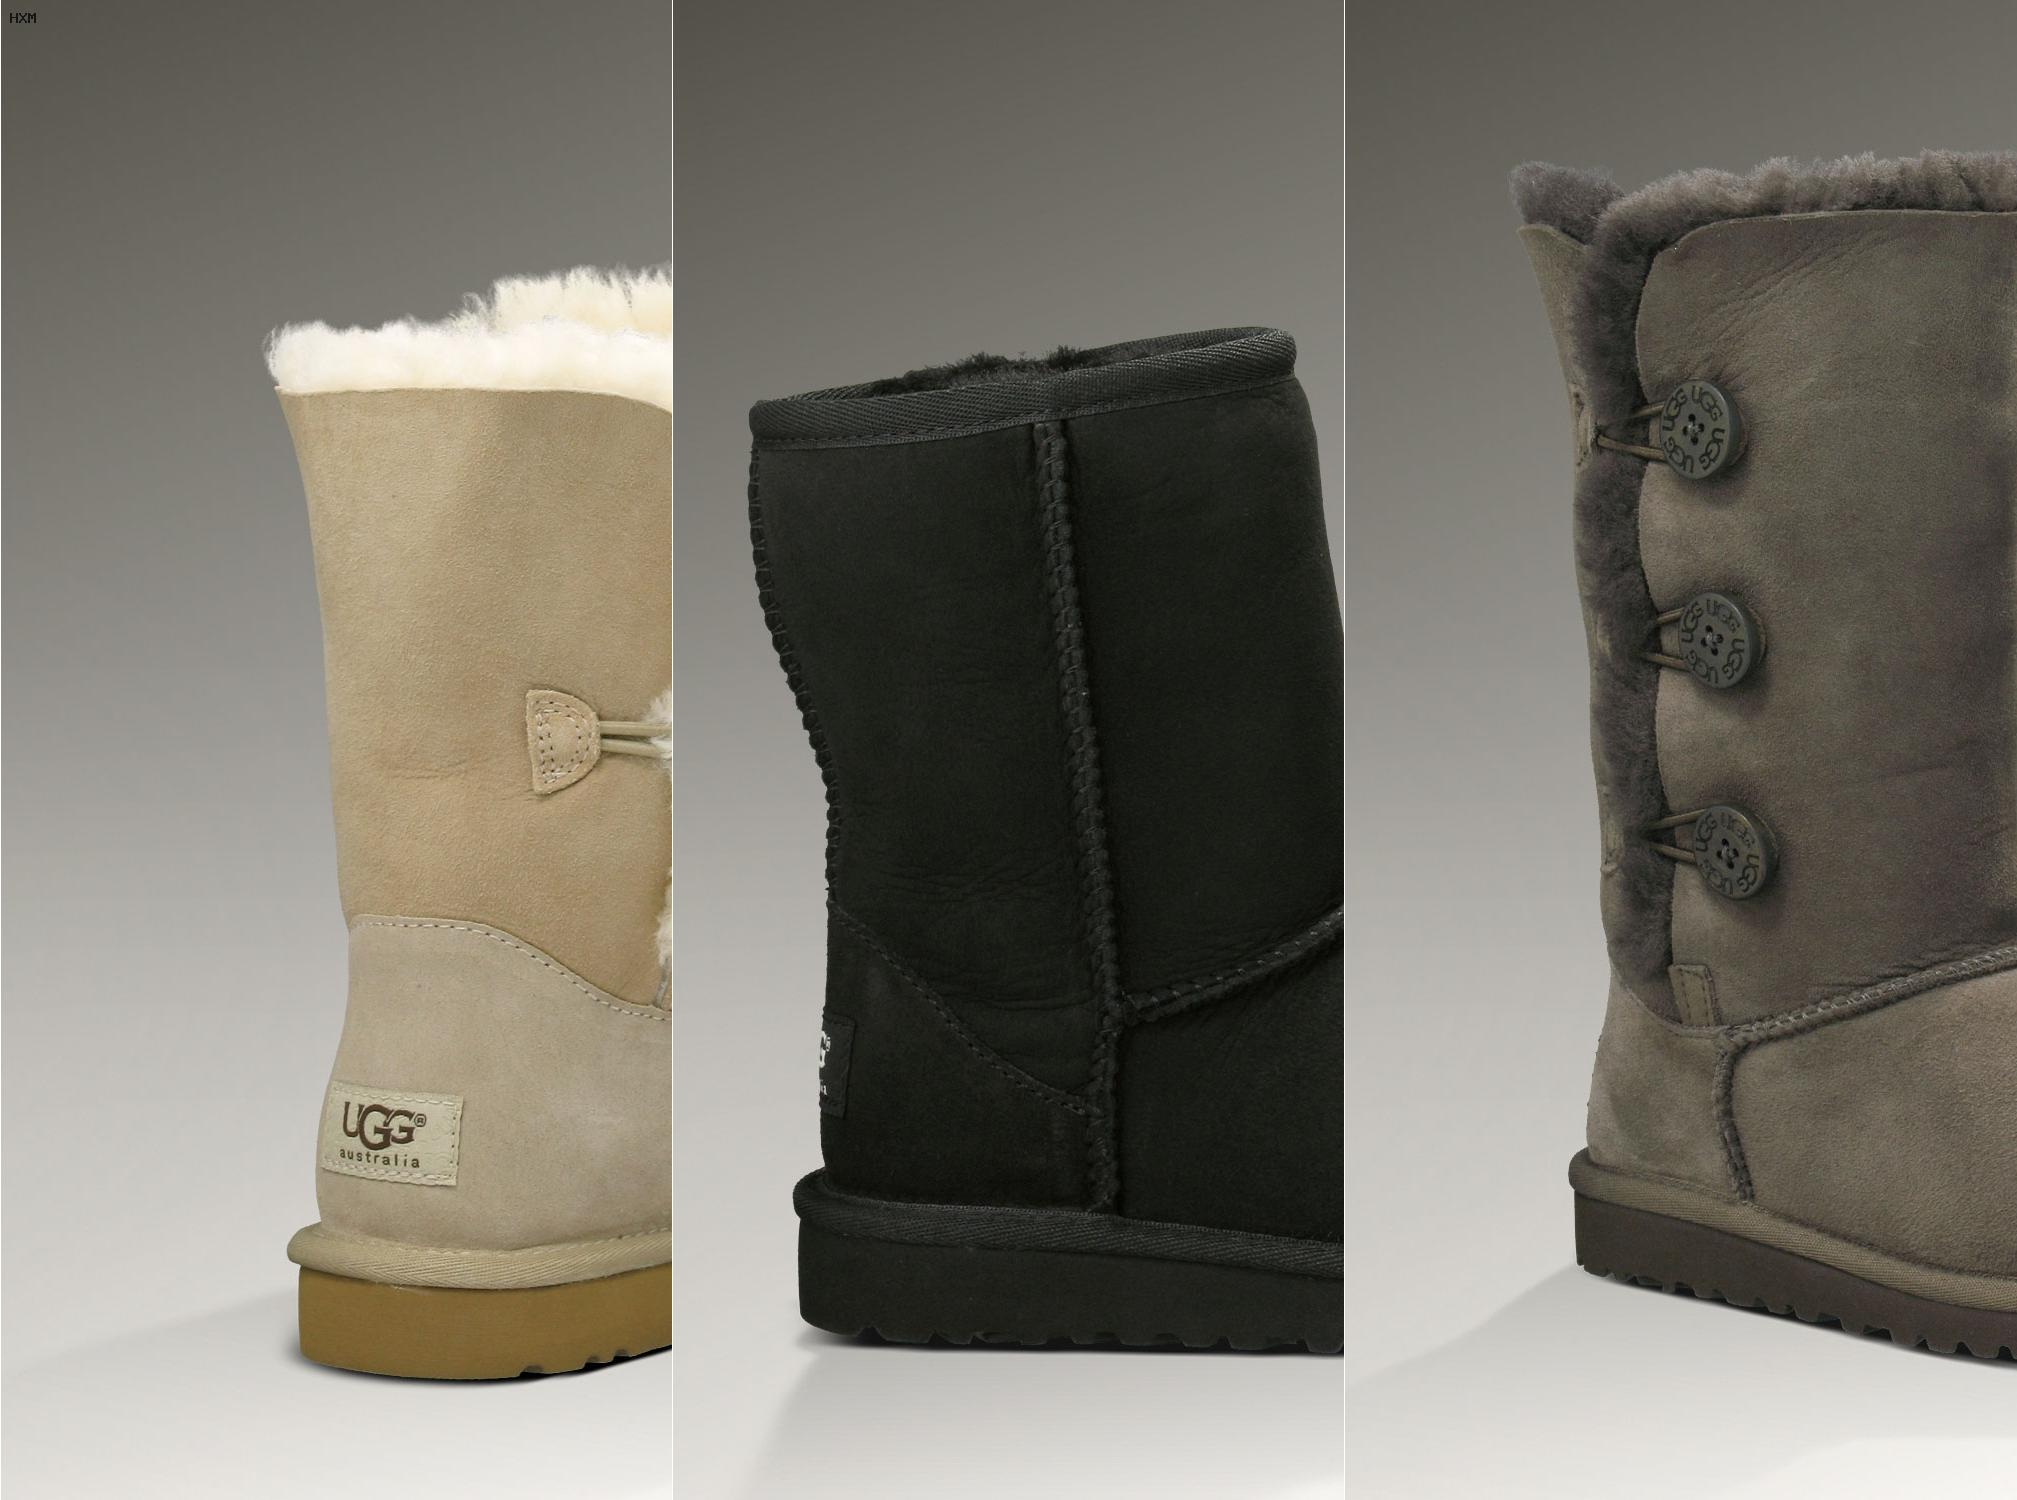 rivers ugg boots promotion